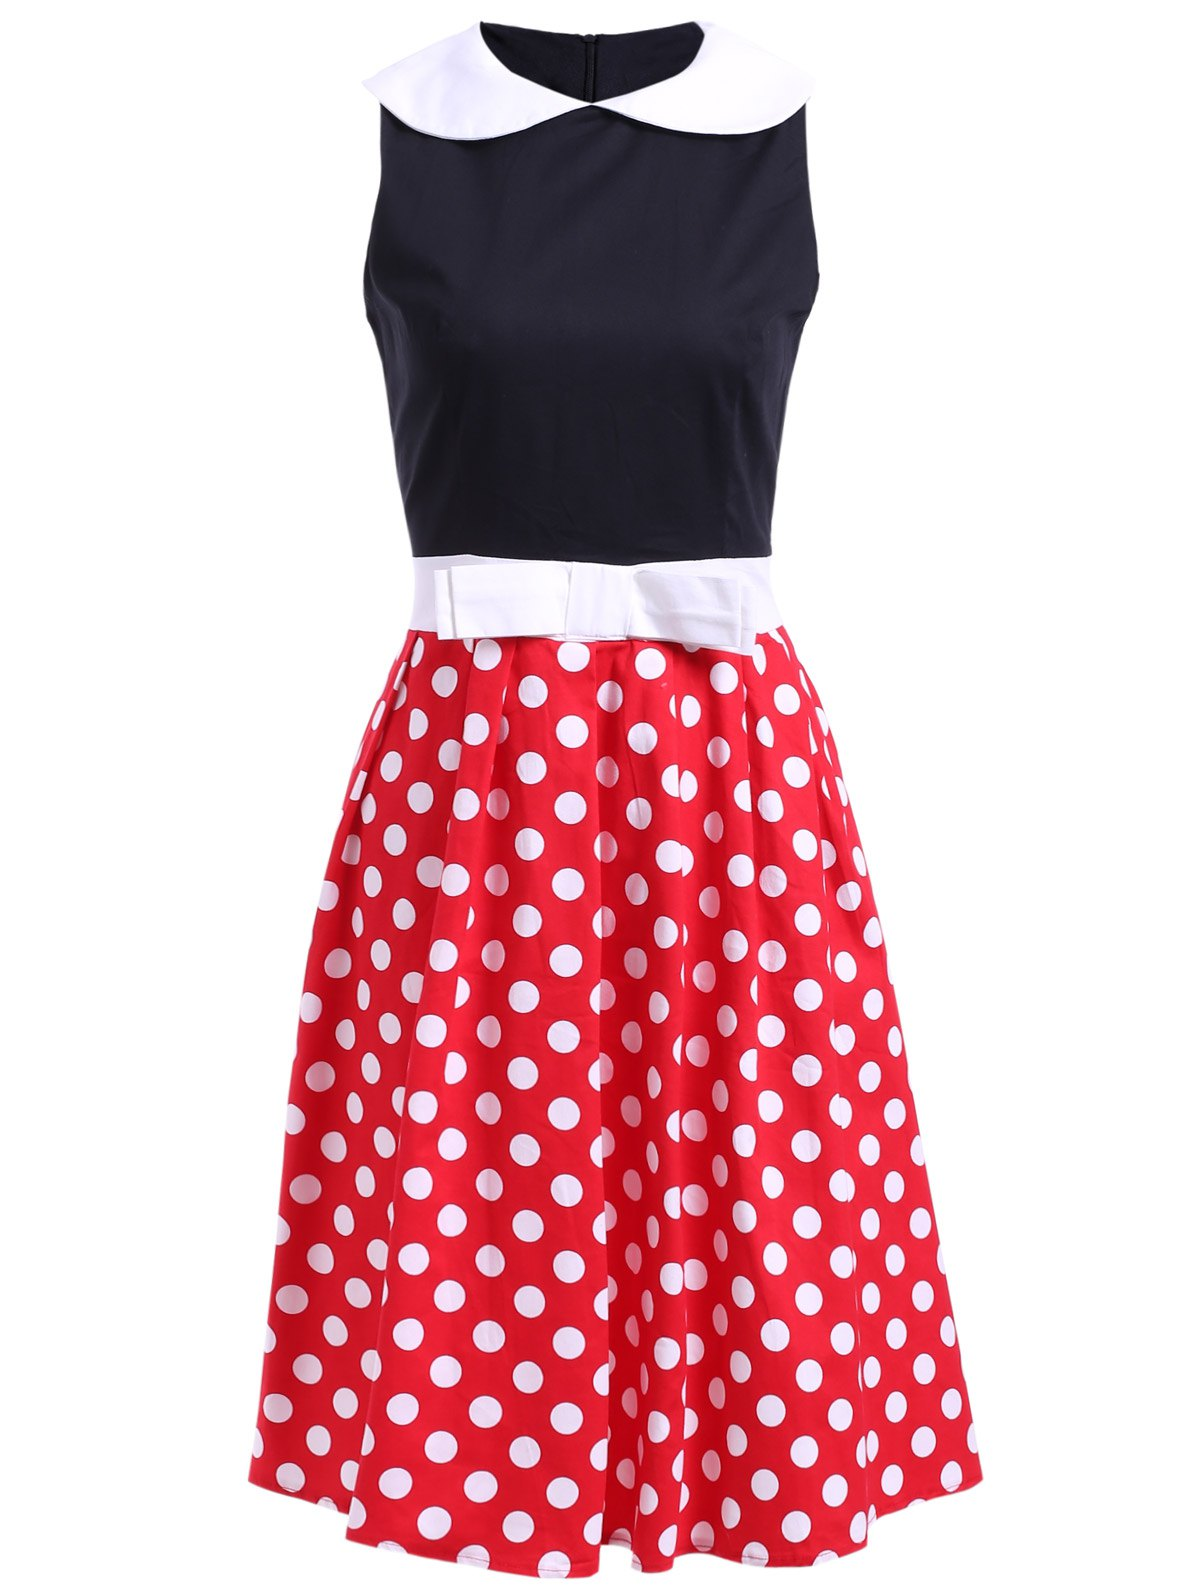 Sweet Sleeveless Peter Pan Collar Bowknot Embellished Polka Dot Women's Dress